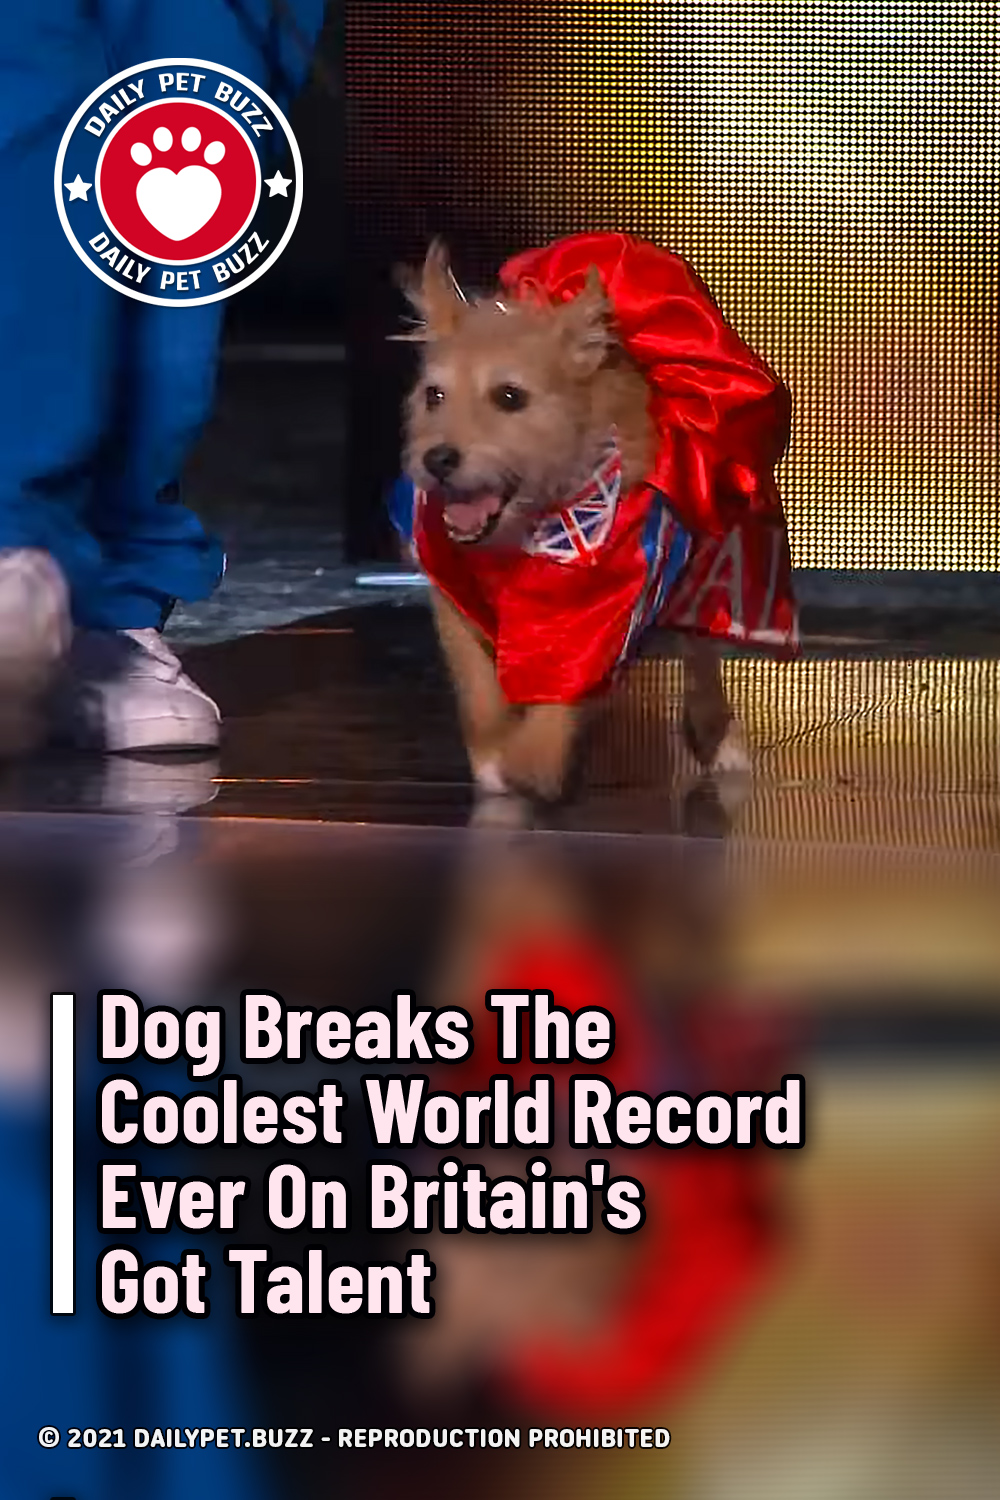 Dog Breaks The Coolest World Record Ever On Britain\'s Got Talent